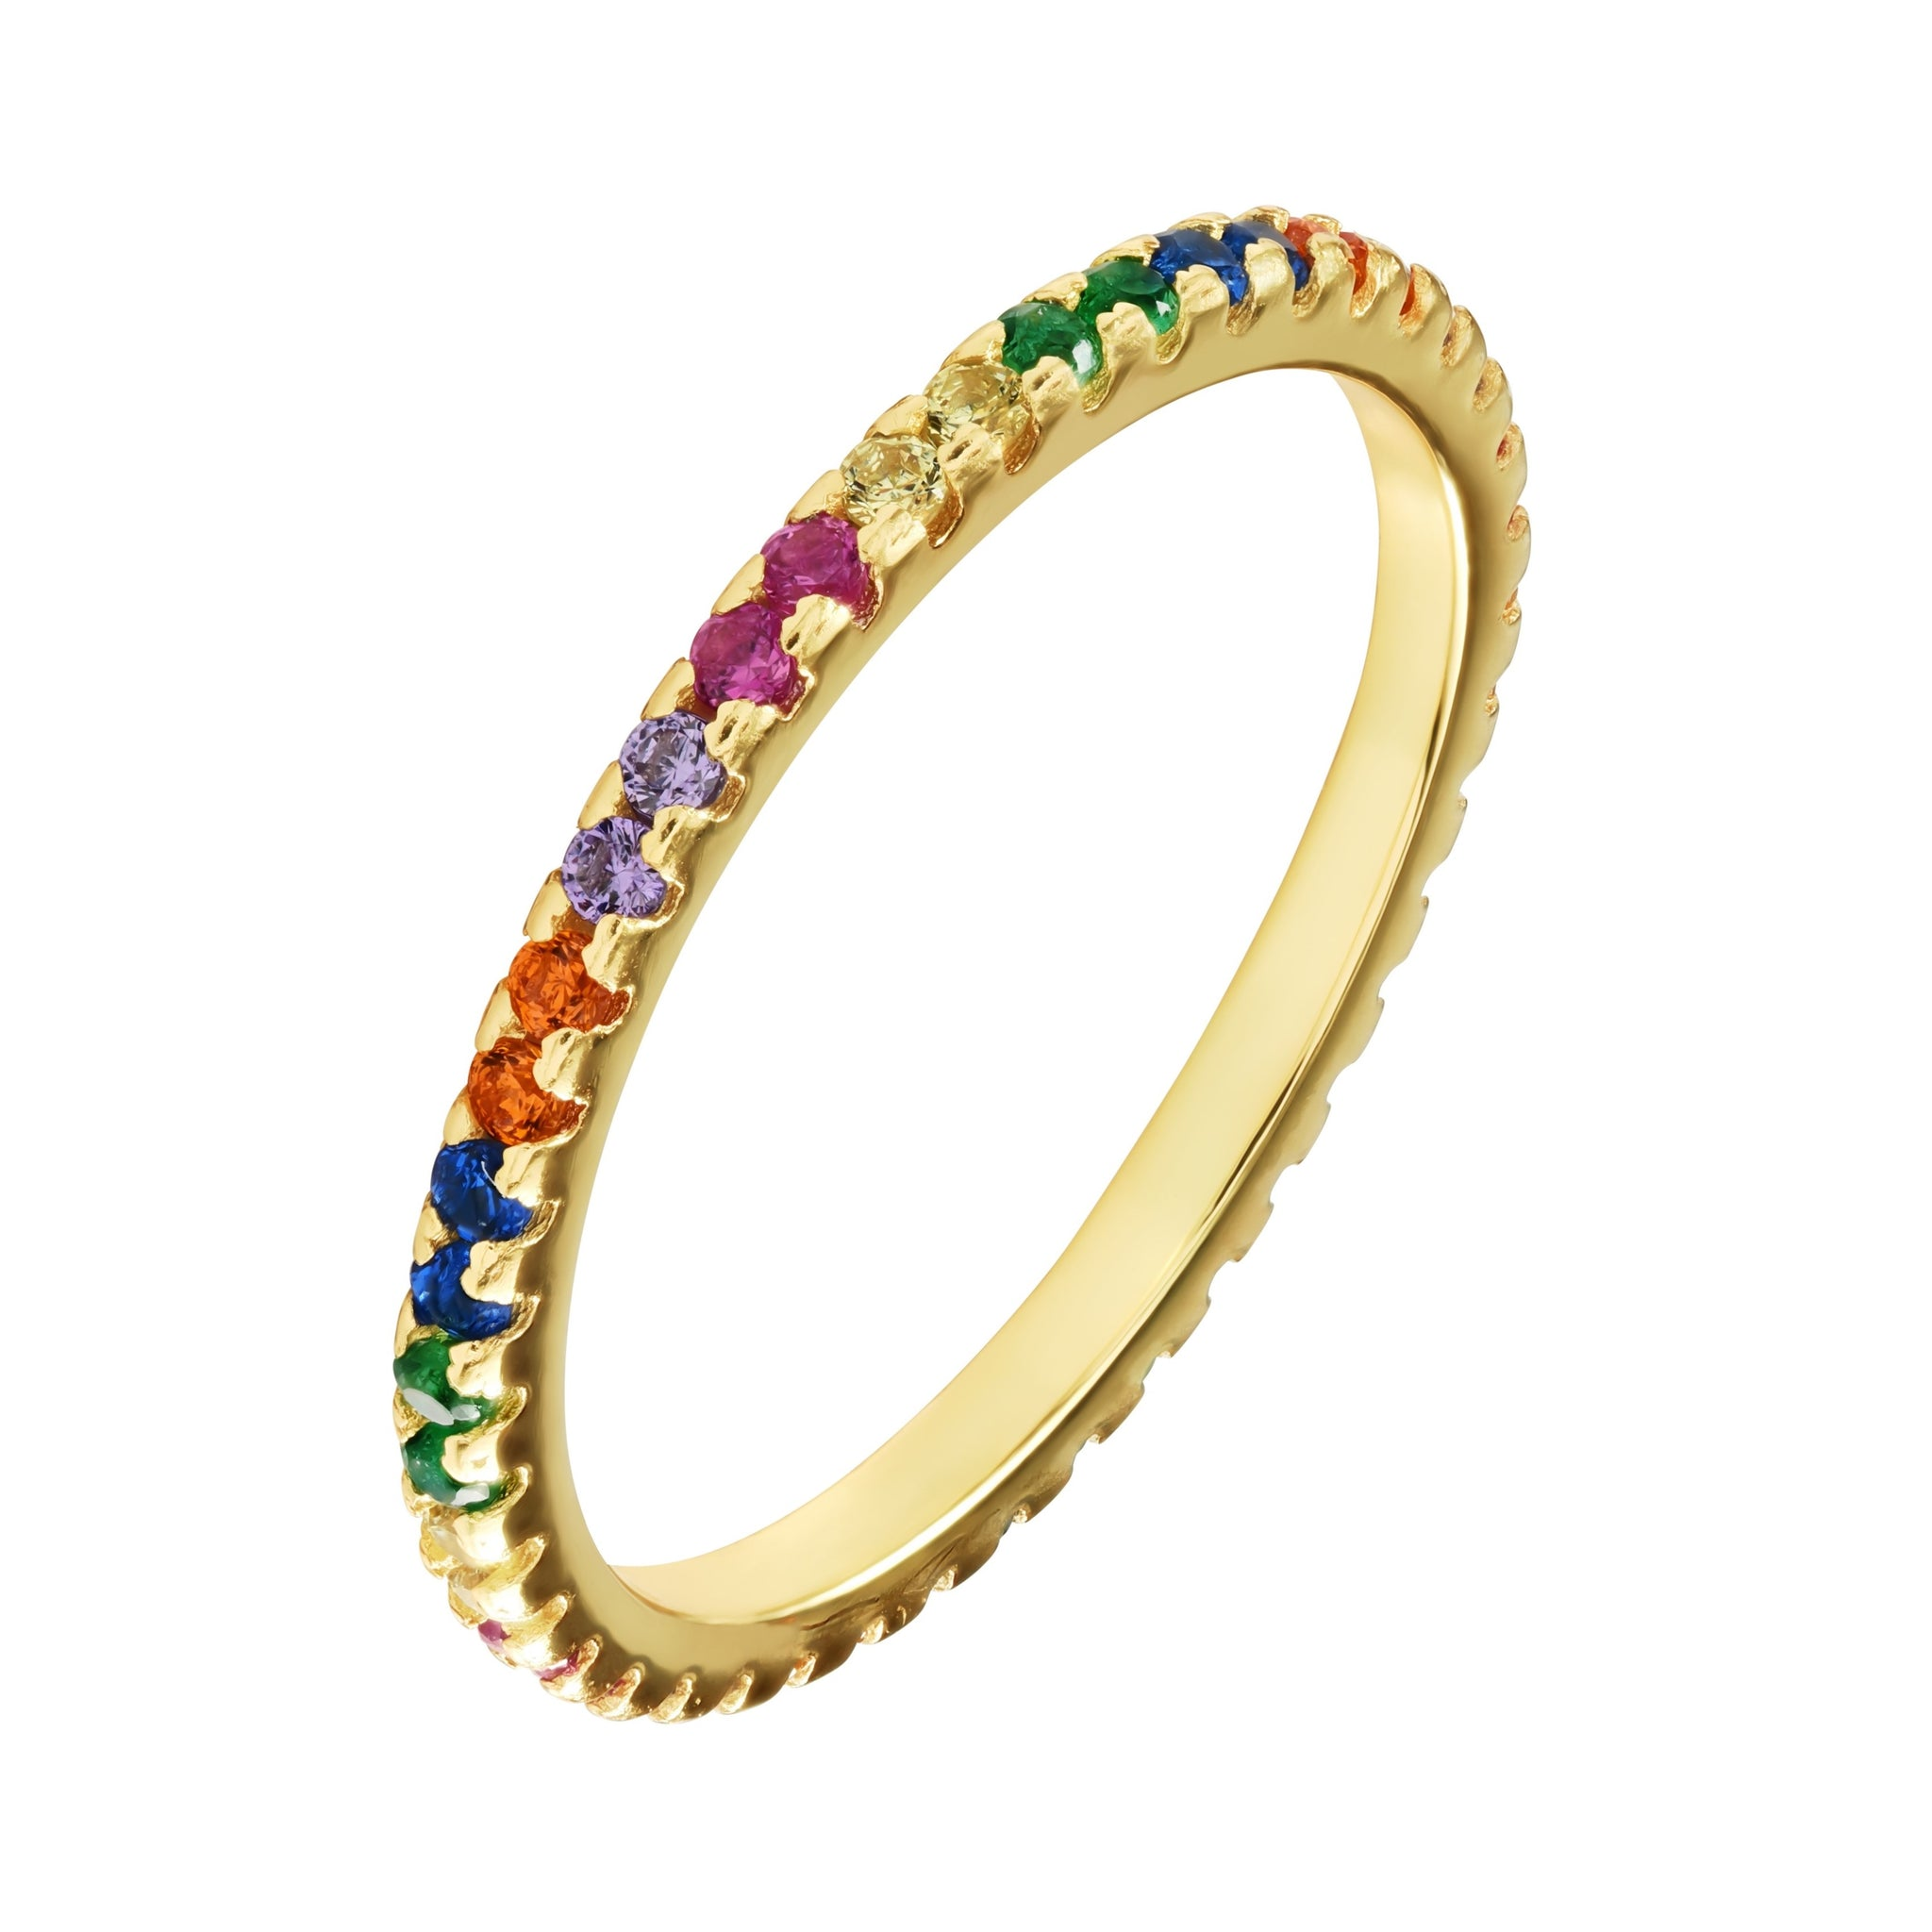 Rainbow Wedding Band - Yellow Gold - Voare Jewelry